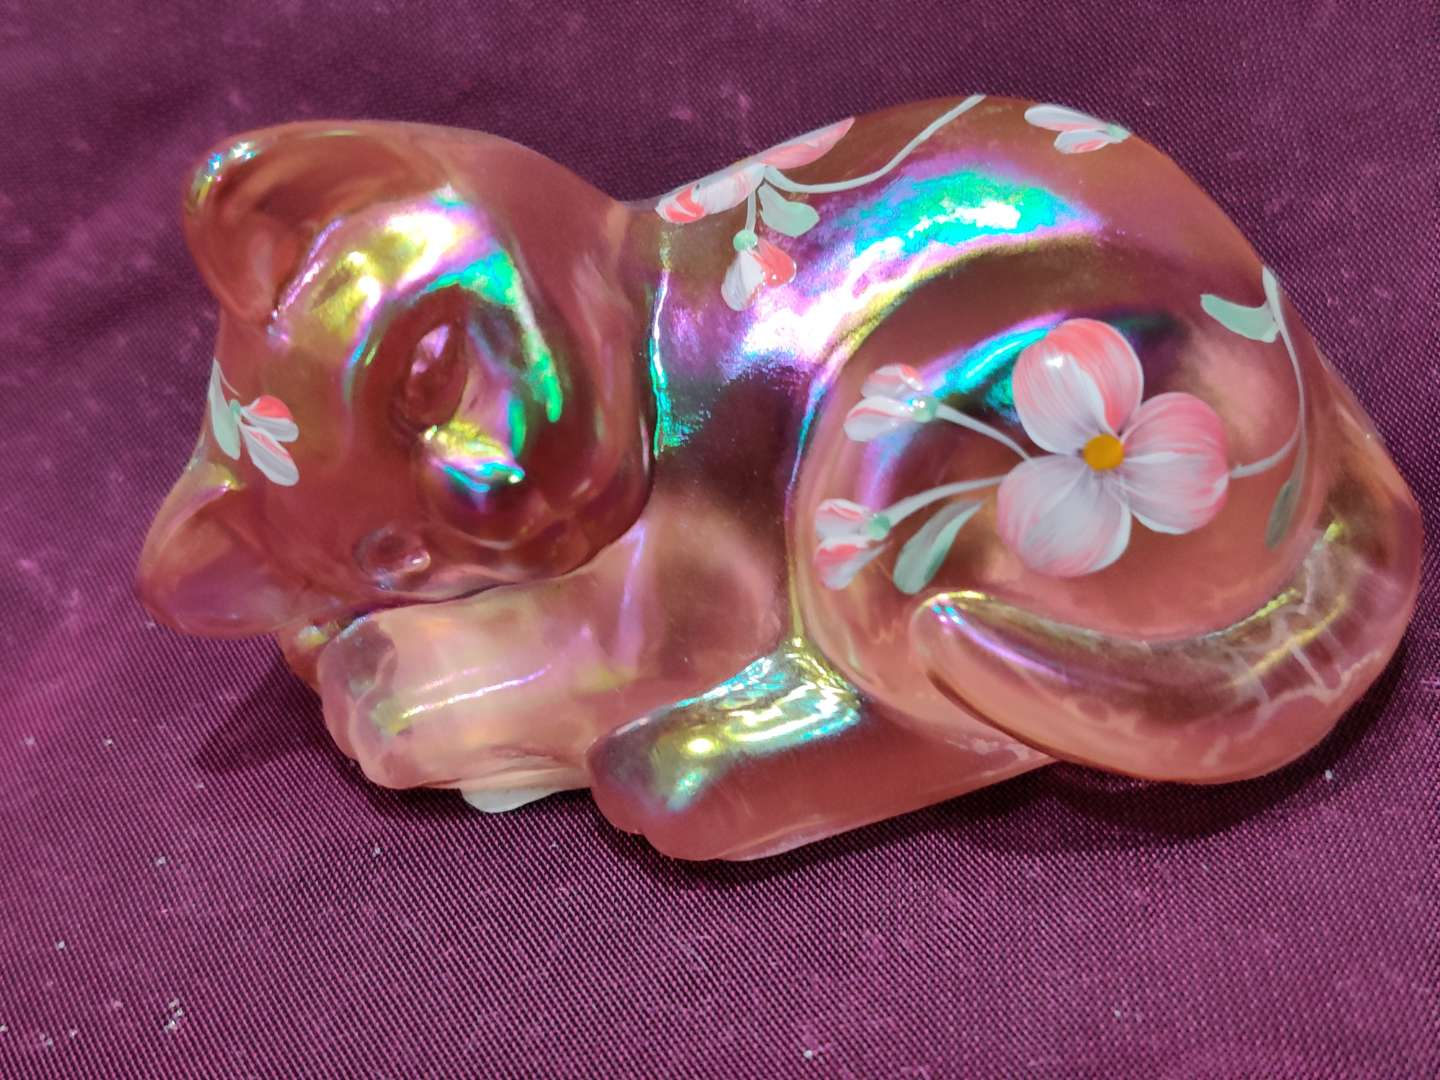 # 9 Fenton art glass peach colored cat 3 in long and great condition